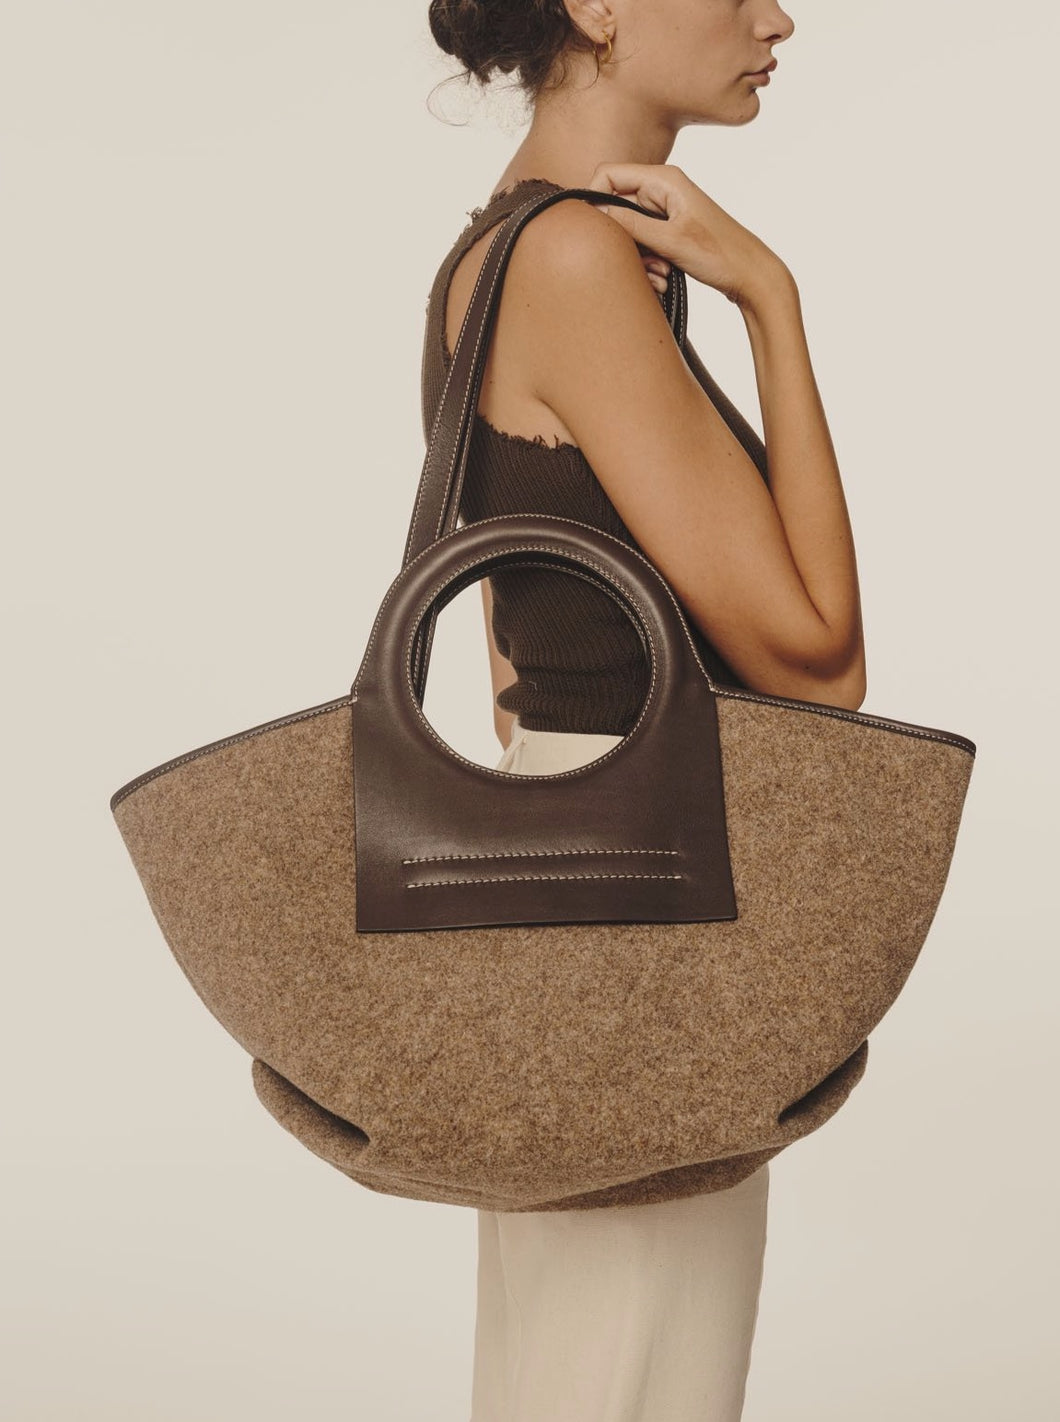 CALA S - Leather-trimmed Felt Tote